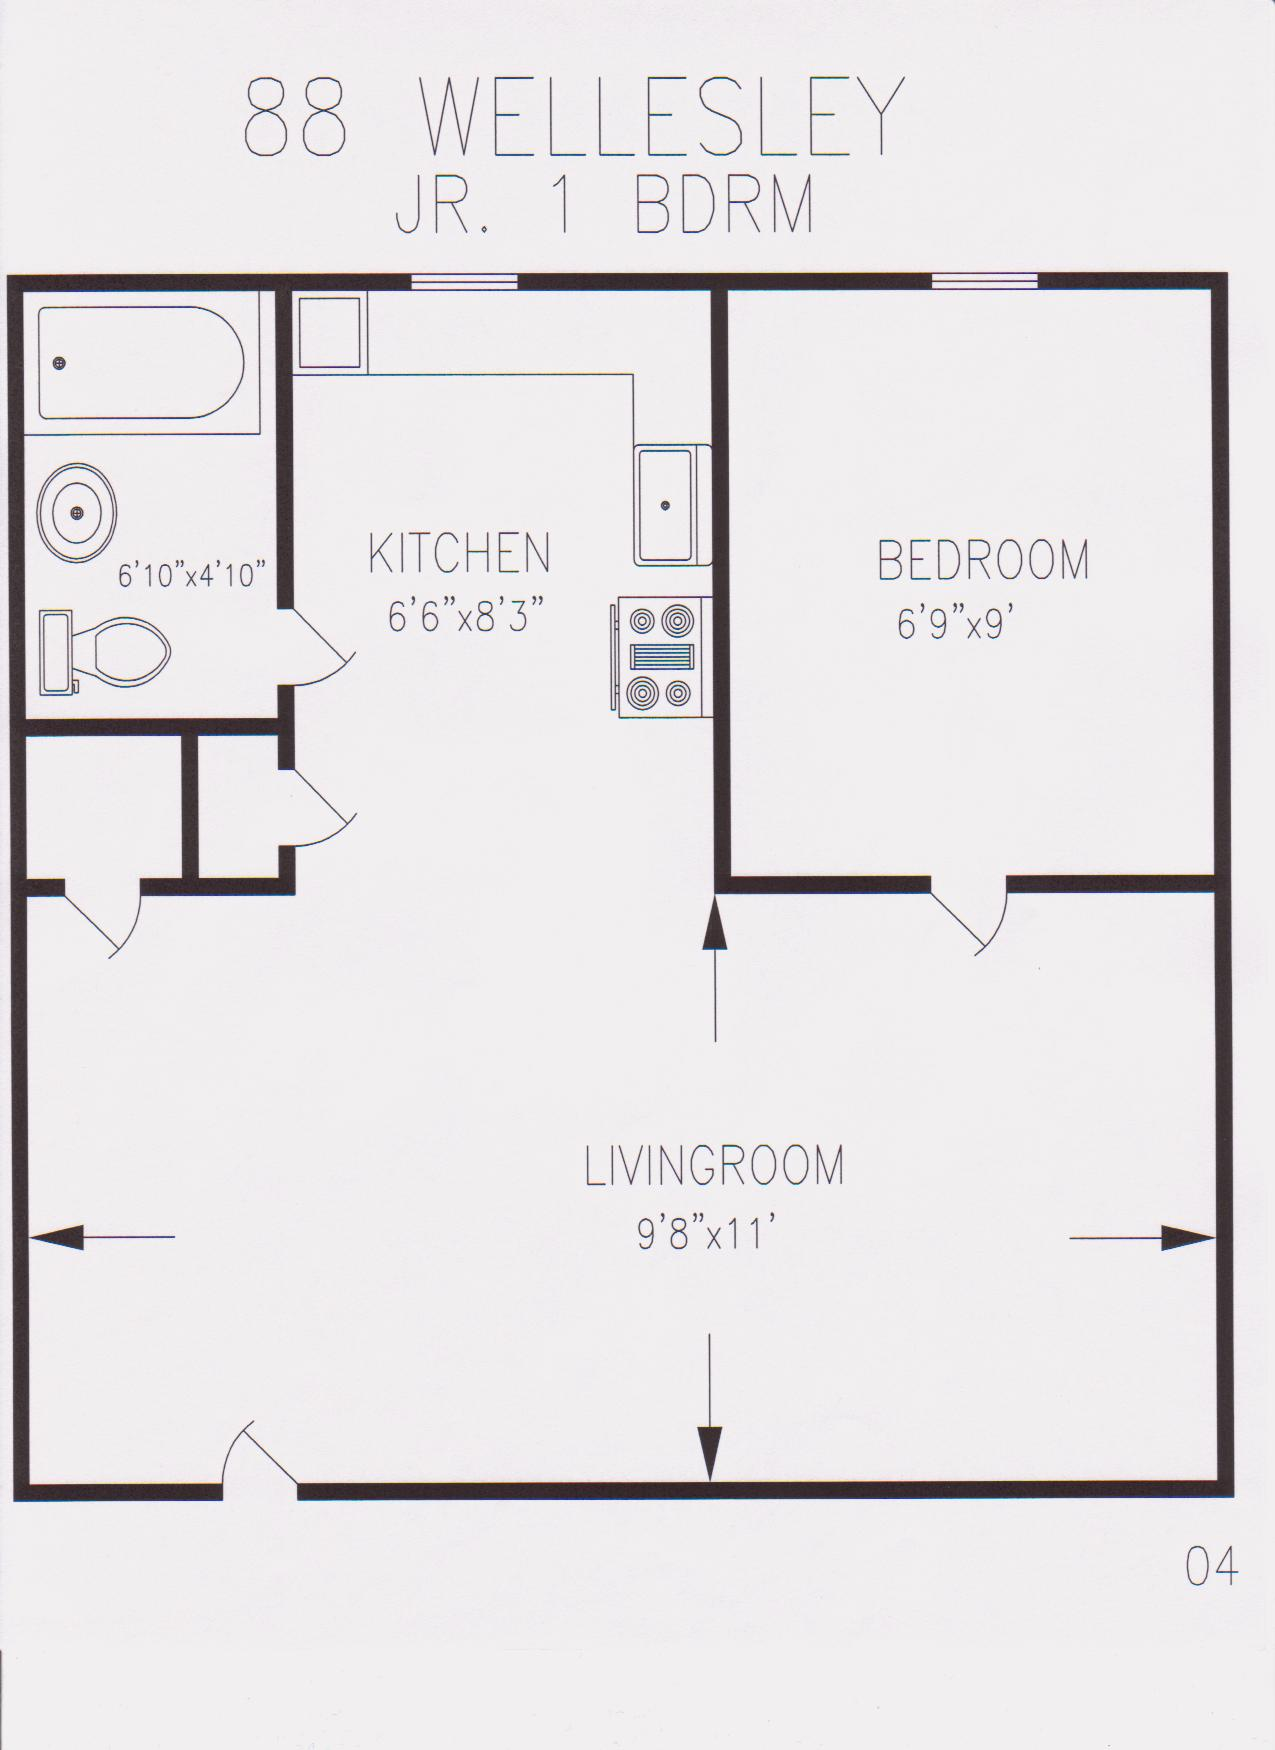 2 Bedroom Loft Apartment Floor Plan moreover 1000 Square Foot House Plans moreover 550 Square Feet Apartment Floor Plan besides 250 Sq FT Studio Apartment Floor Plans likewise mercial Apartment Building Design. on 400 sq ft apartment plans